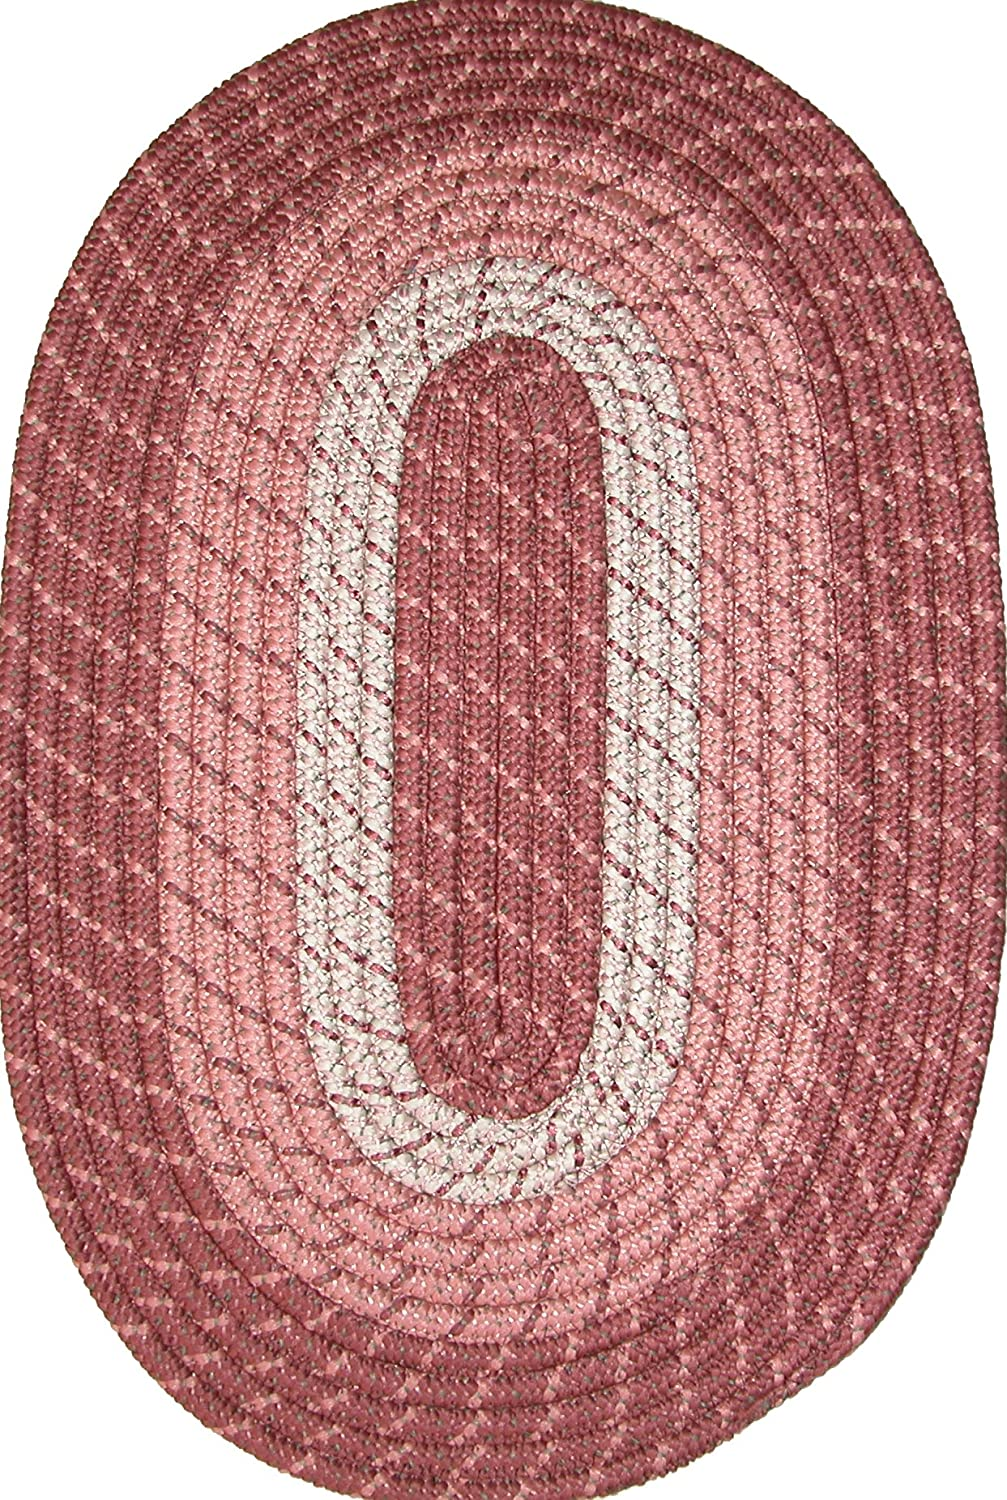 Plymouth 24 x 60 (Runner) Braided Rug in Light Rose Constitution Rugs